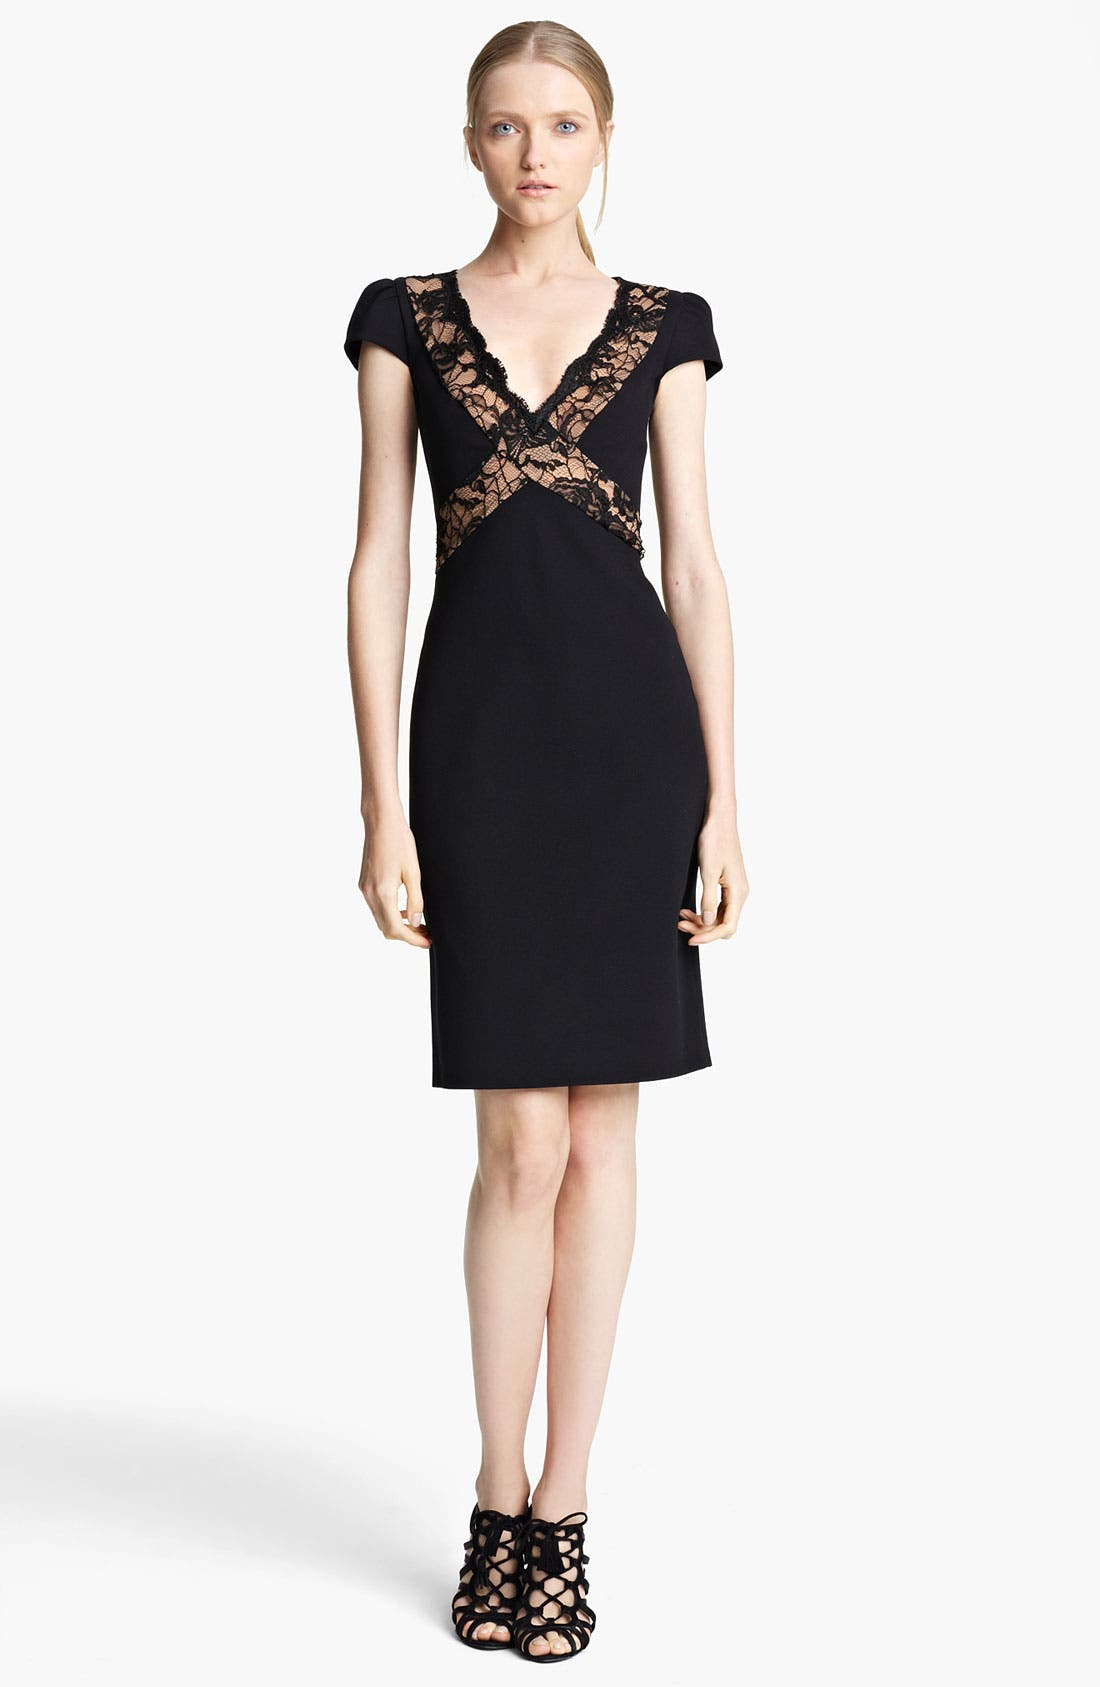 Alternate Image 1 Selected - Emilio Pucci Crisscross Lace Punto Milano Dress